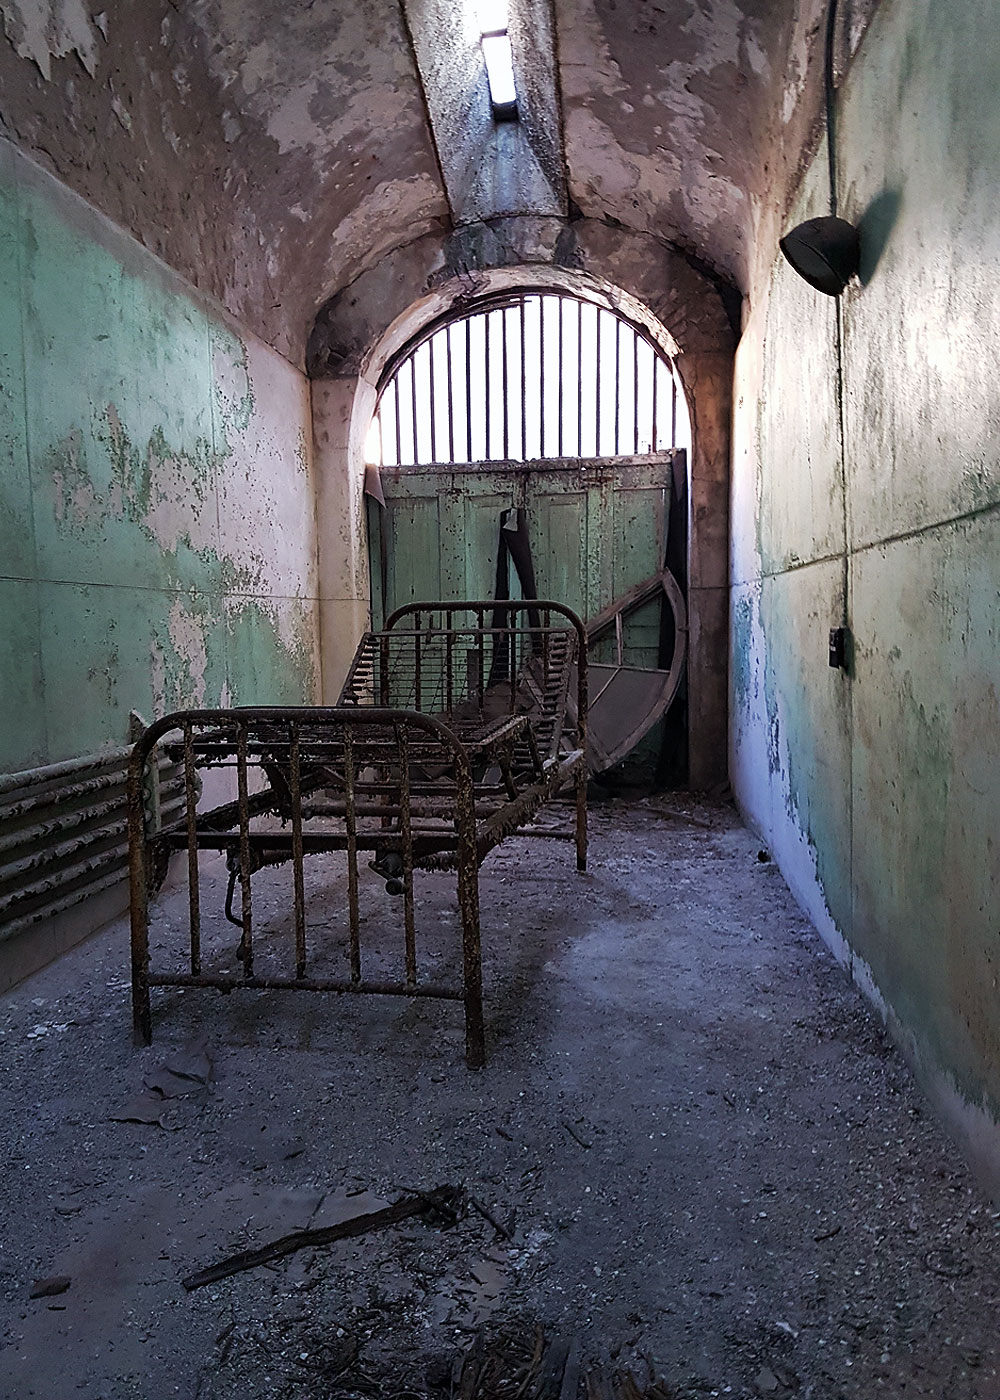 Inside another cell at Eastern State Penitentiary